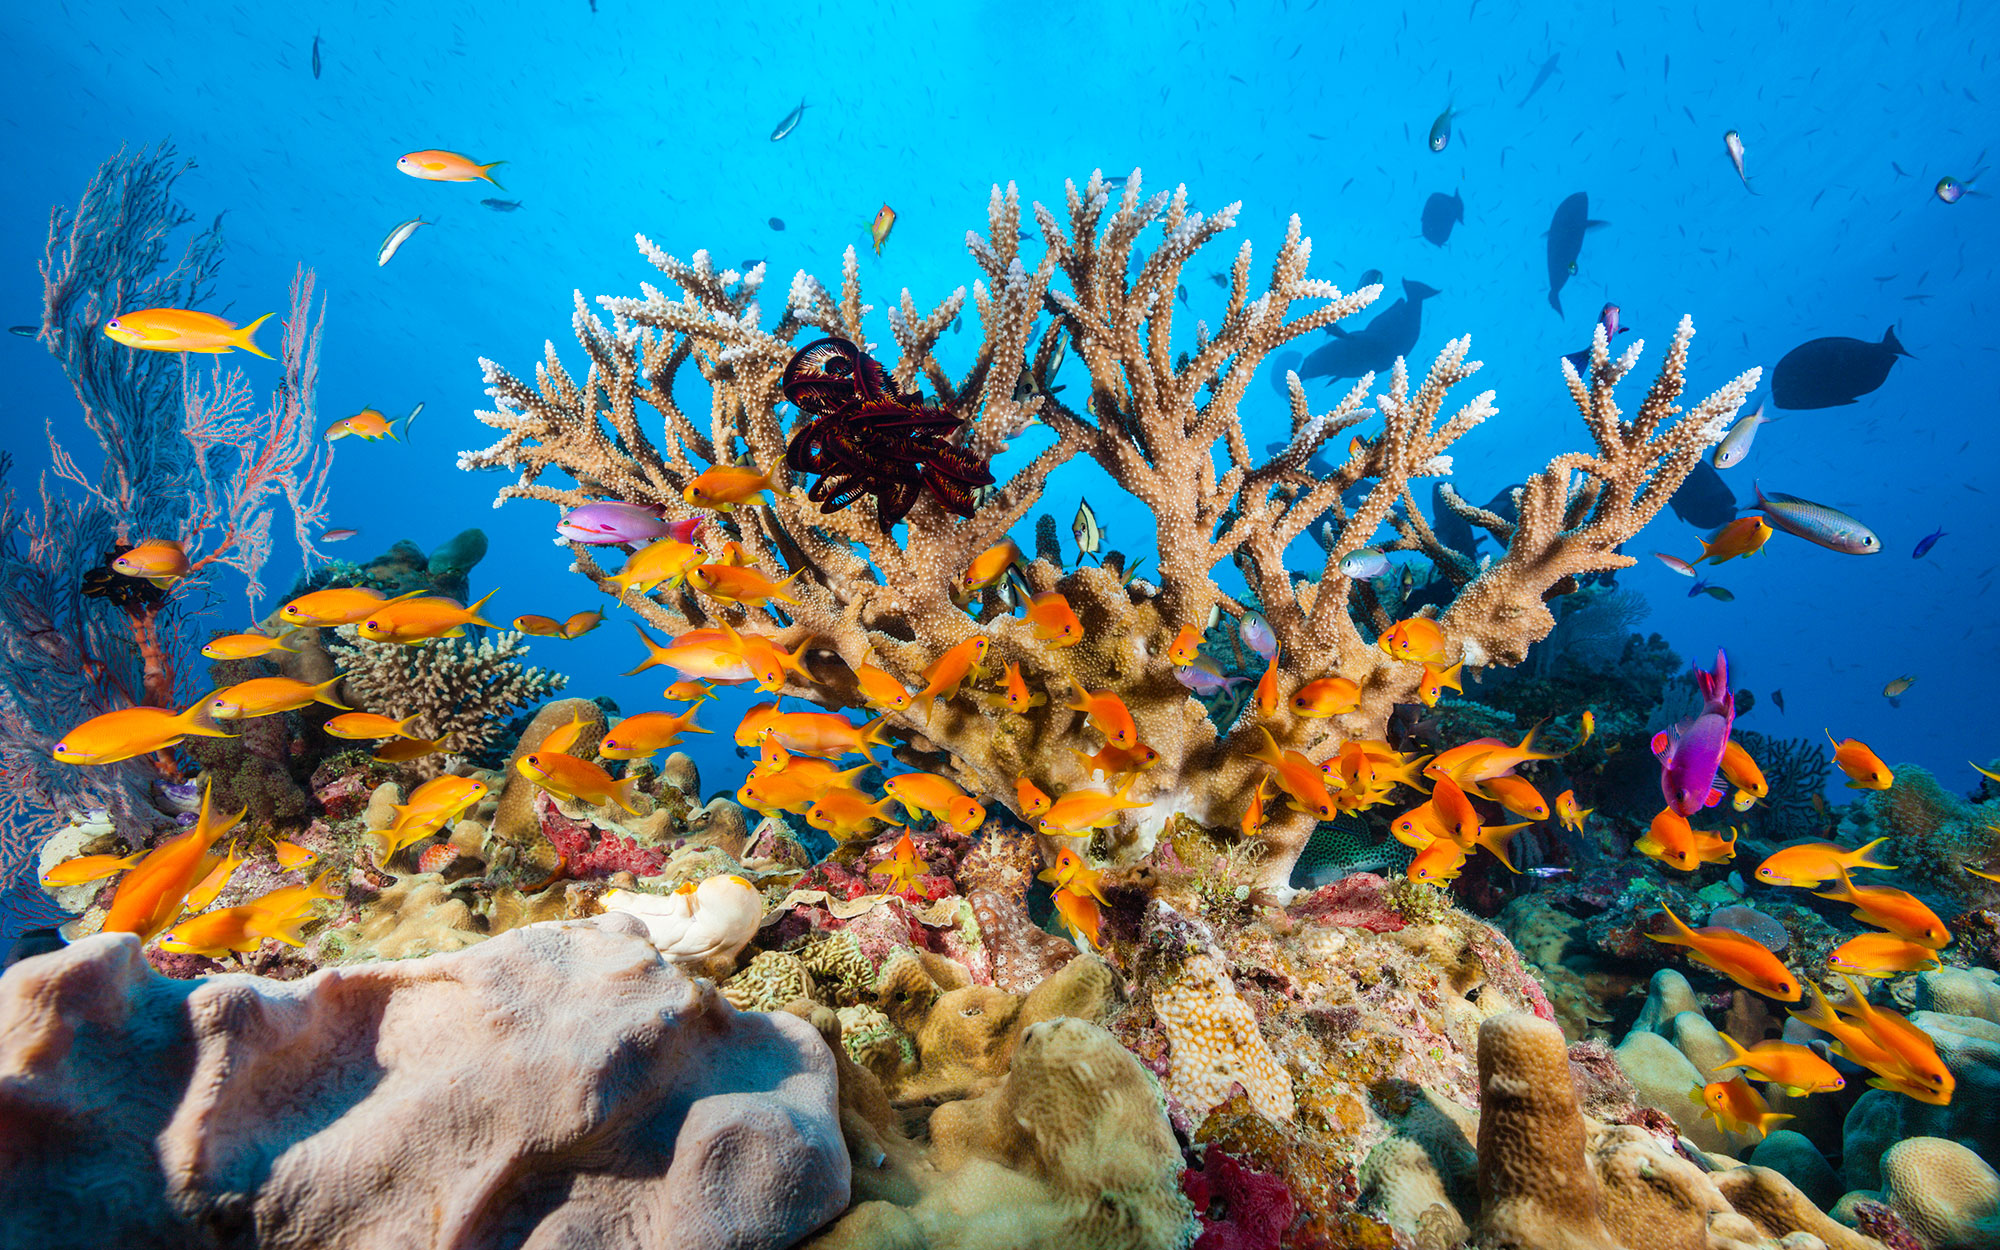 Great Barrier Reef Faces 'Severe' Coral Bleaching, Photos Show